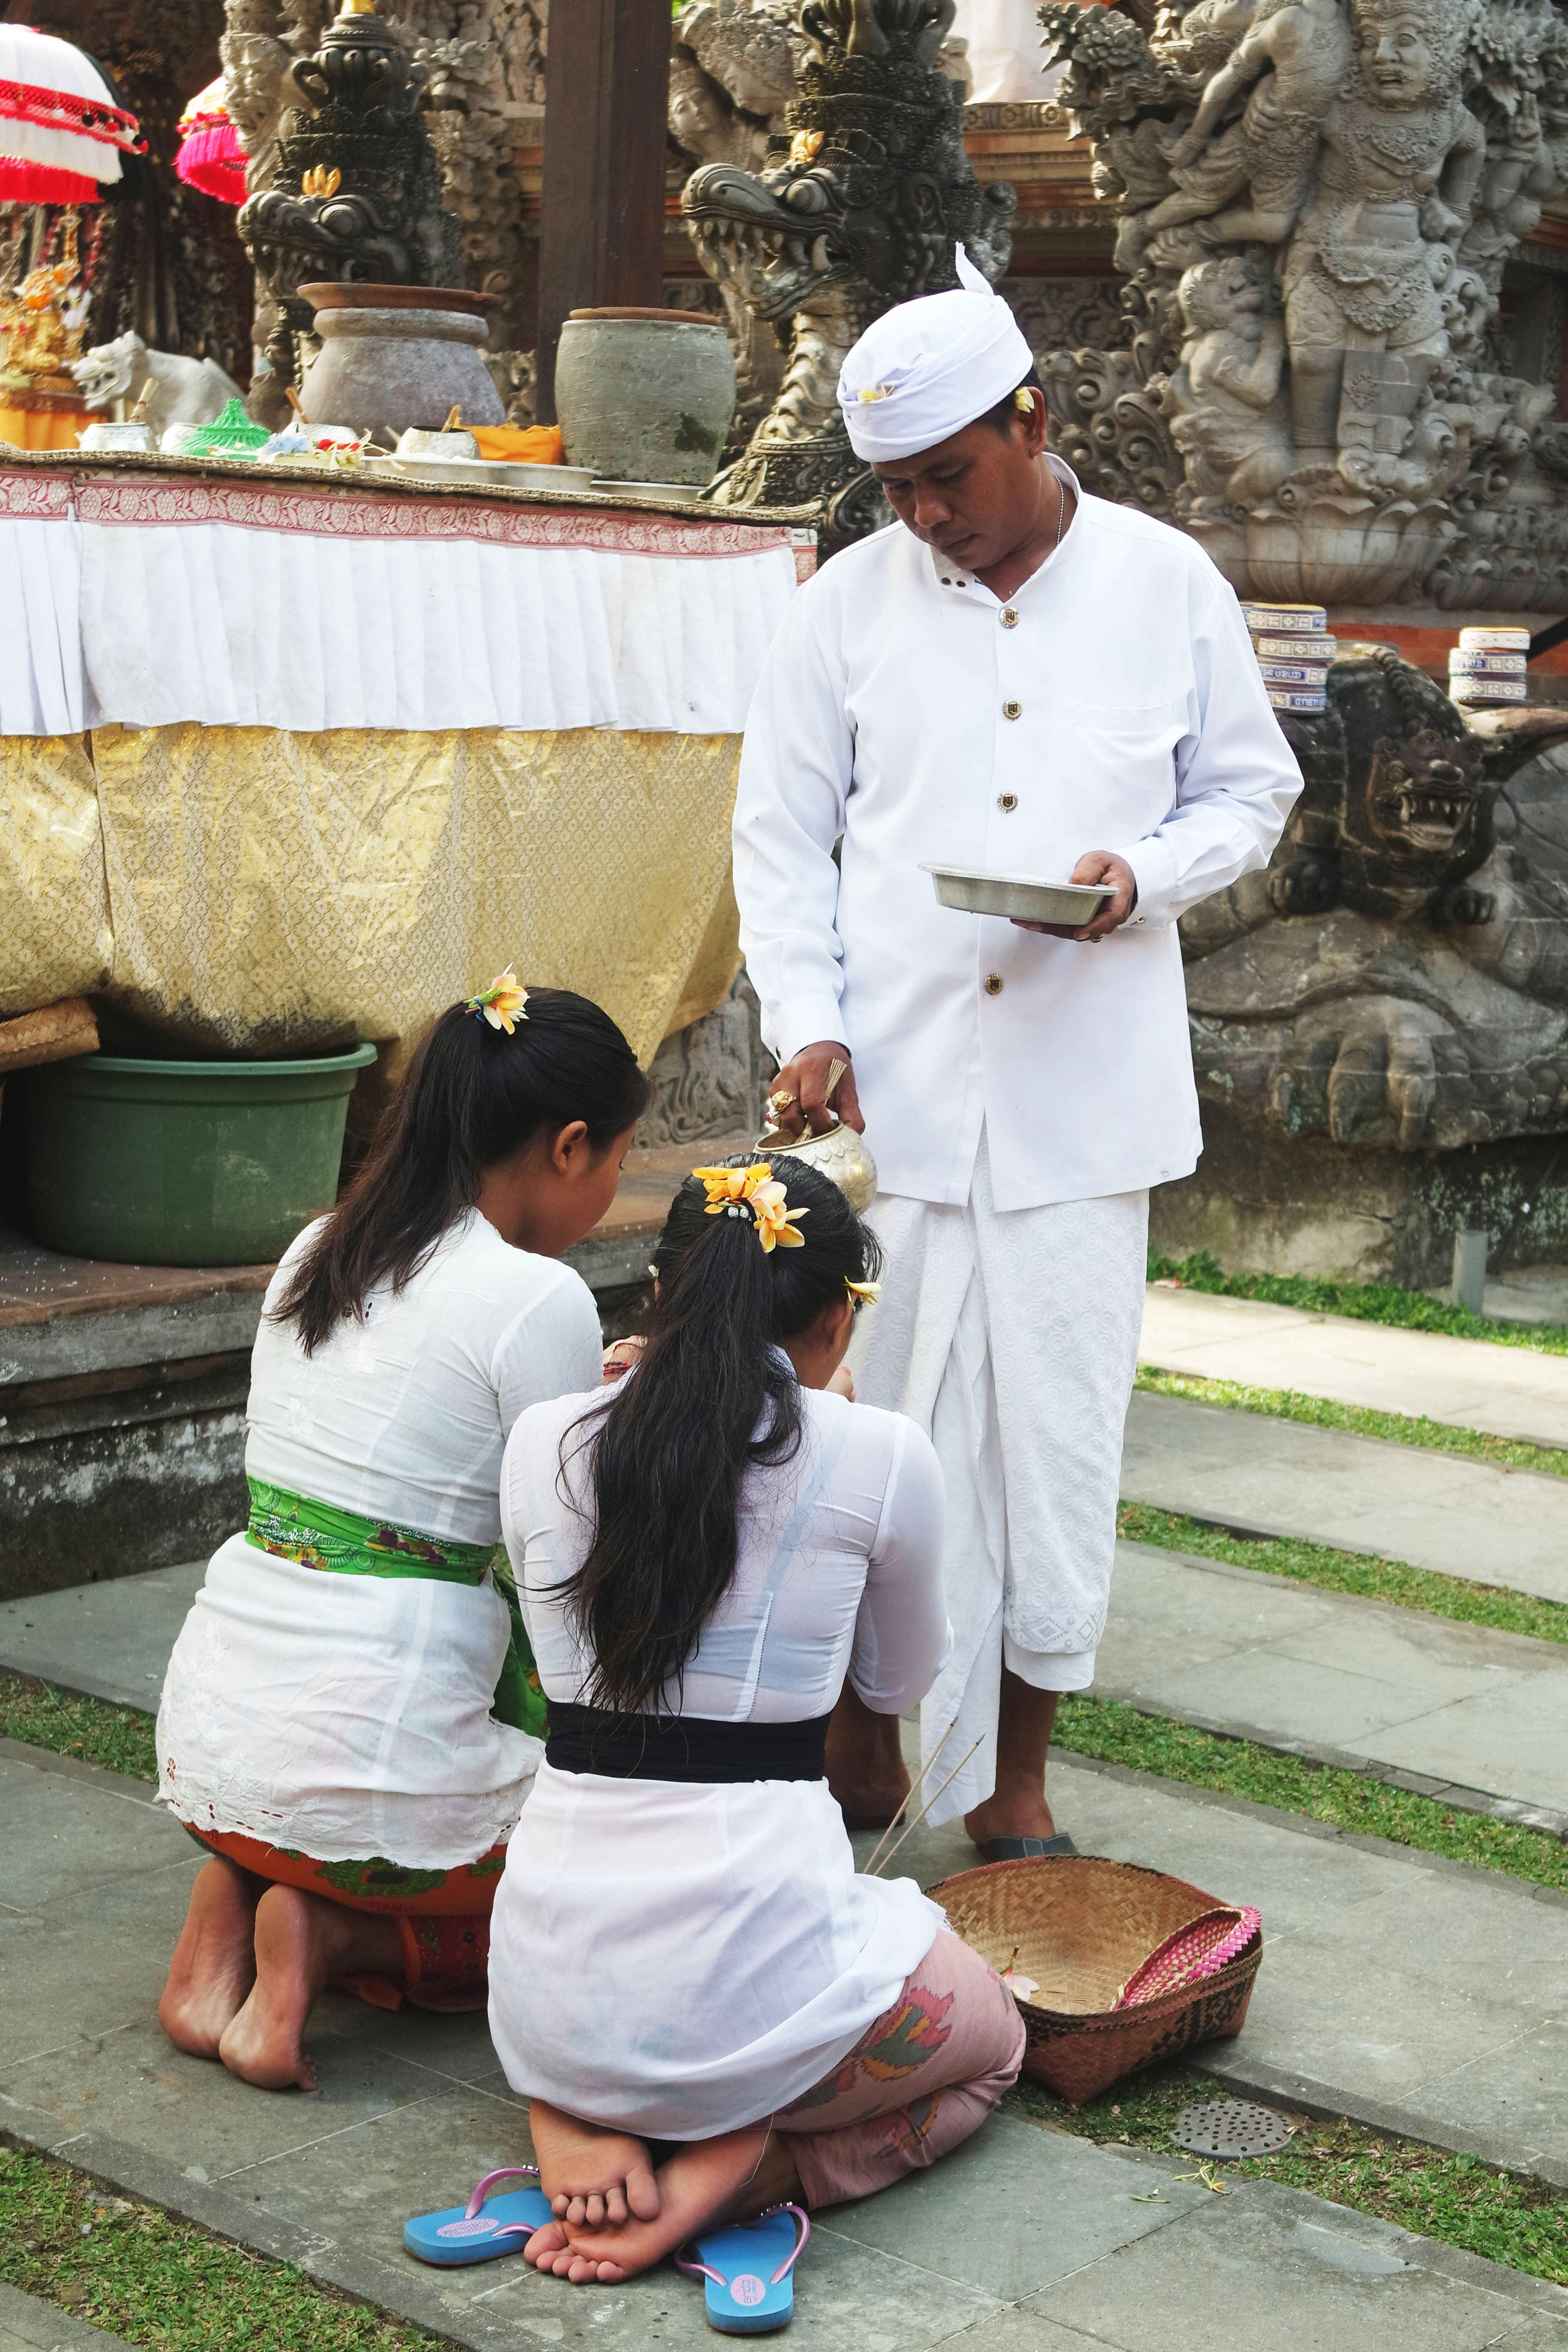 choses-à-faire-visiter-bali-ubud-blog-guide-city-ceremonie-temple-centre